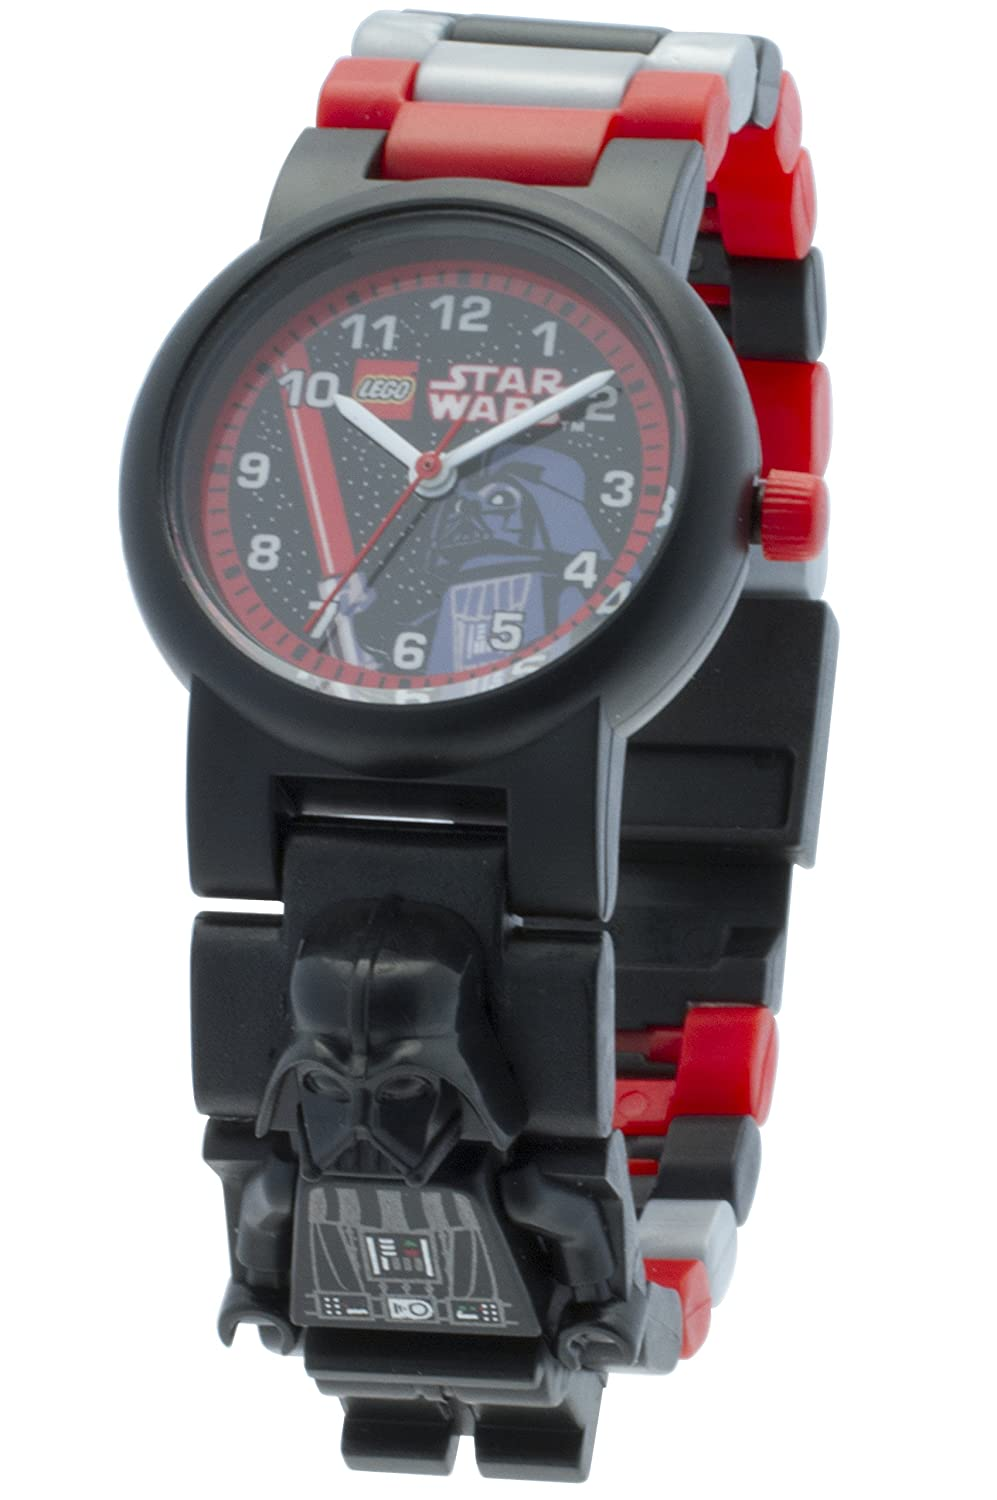 Amazon.com: Lego toy watch Star Wars Link Watch Darth Vader: Toys & Games